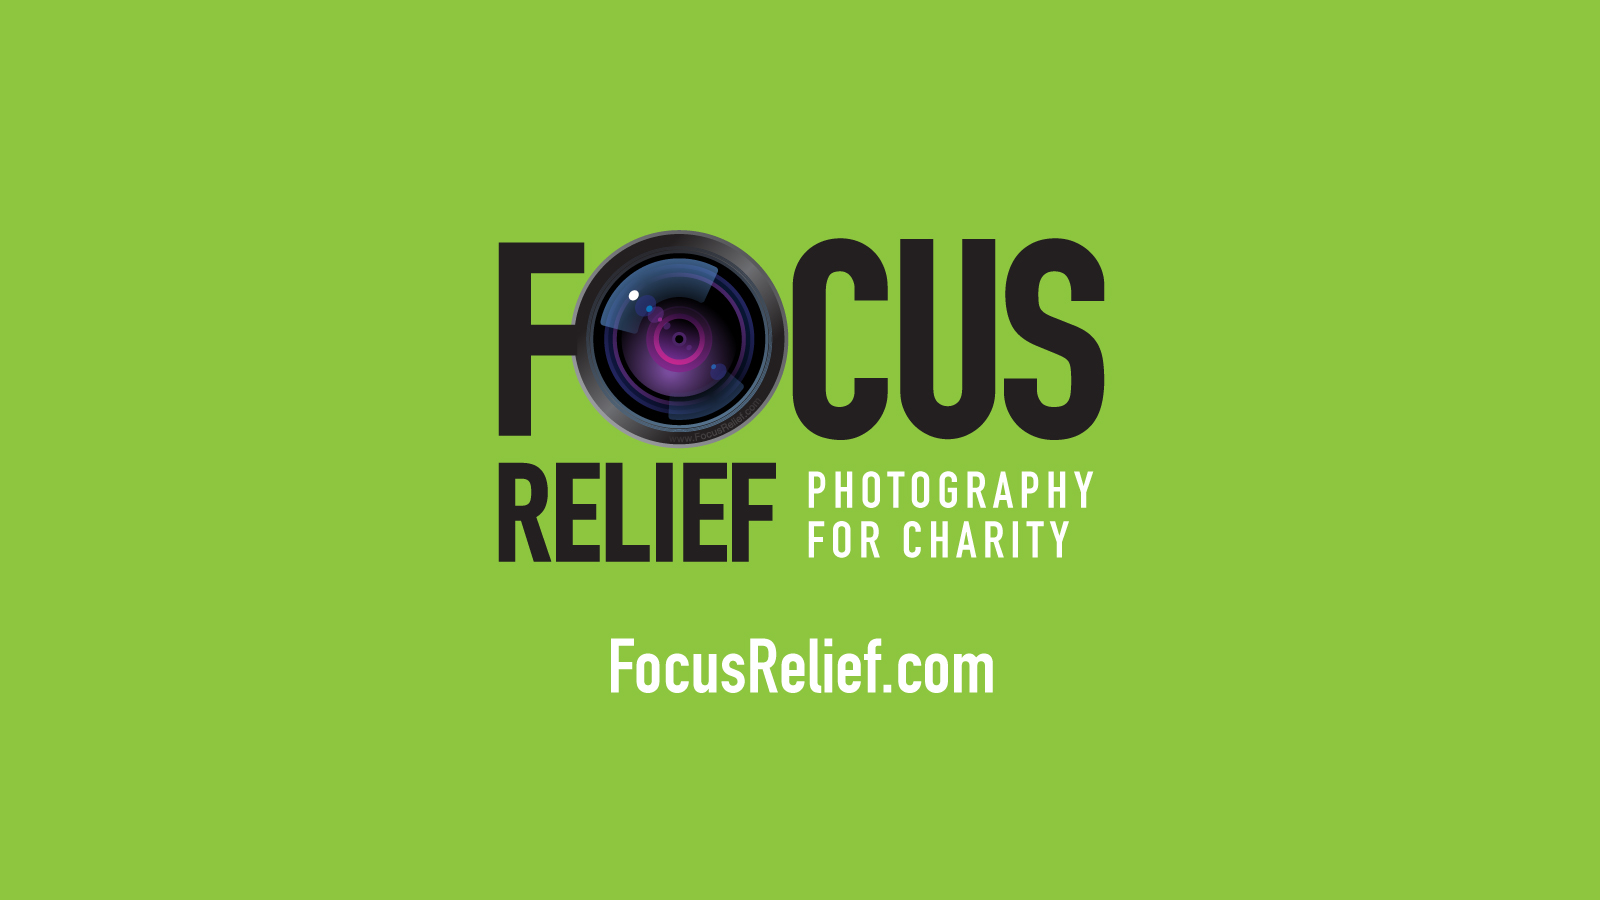 Focus Relief - Photography for Charity